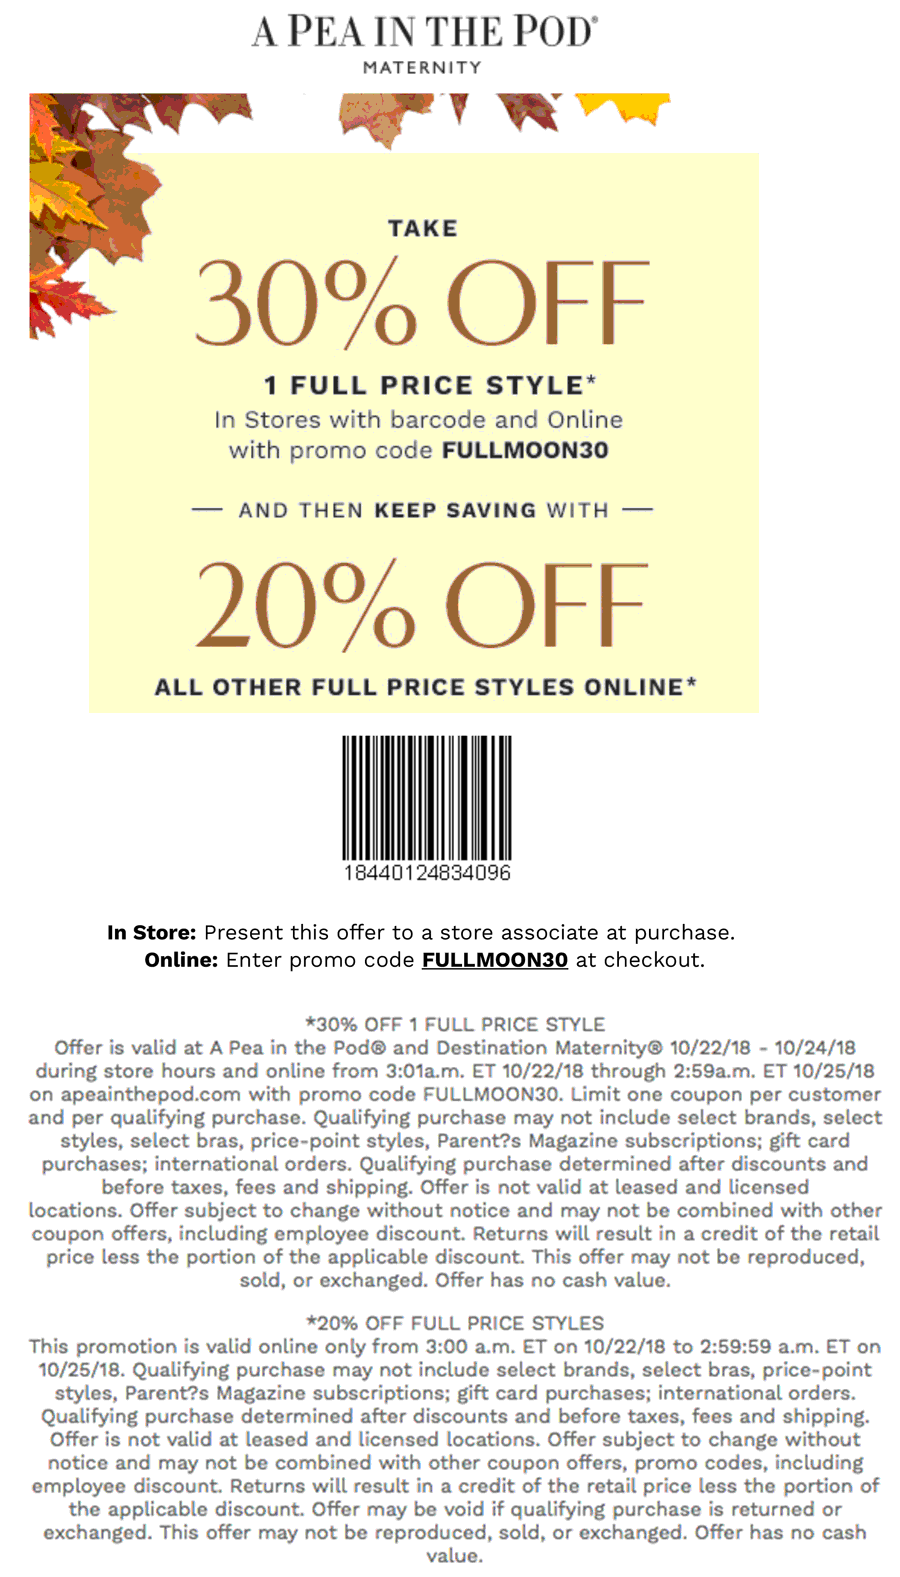 A Pea in the Pod Coupon November 2019 20-30% off at A Pea in the Pod maternity, or online via promo code FULLMOON30